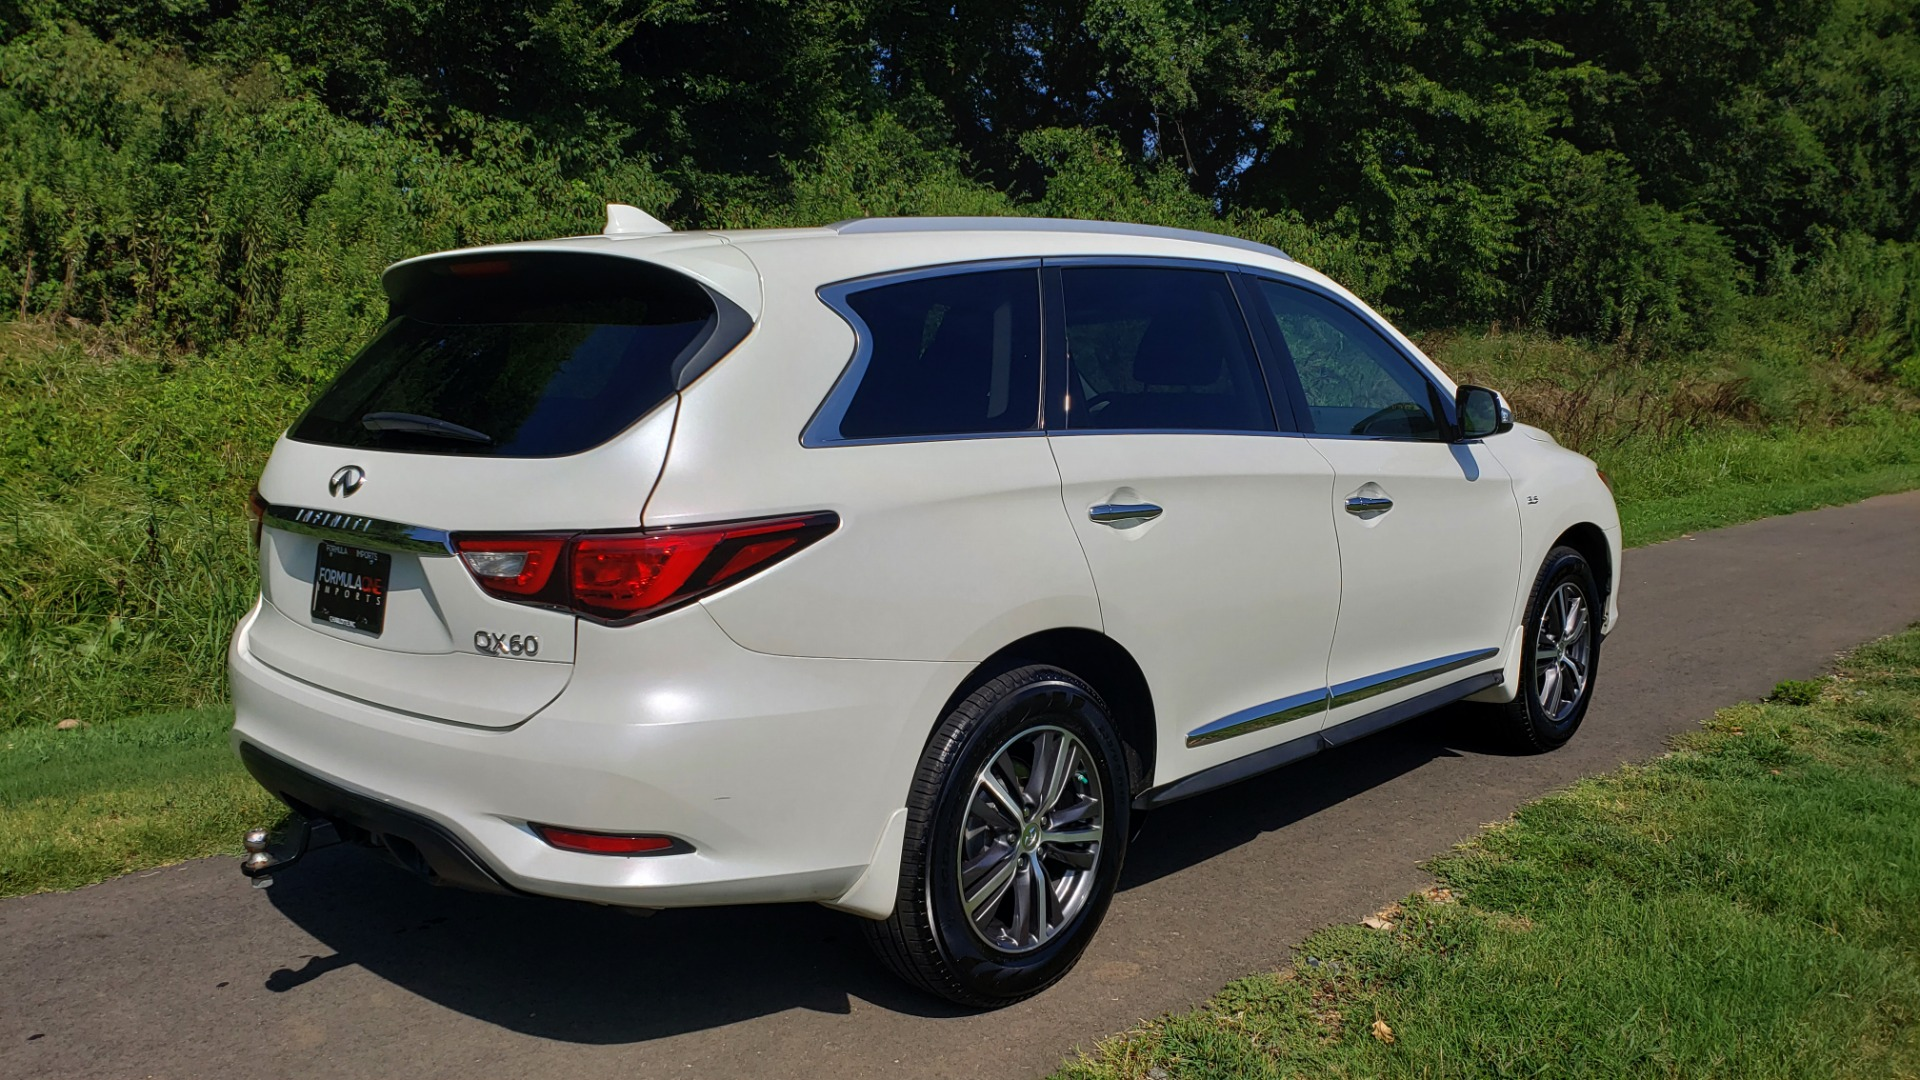 Used 2016 Infiniti QX60 AWD / 3.5L V6 / SUNROOF / HTD STS / 3-ROW / TOWING / REARVIEW for sale Sold at Formula Imports in Charlotte NC 28227 2